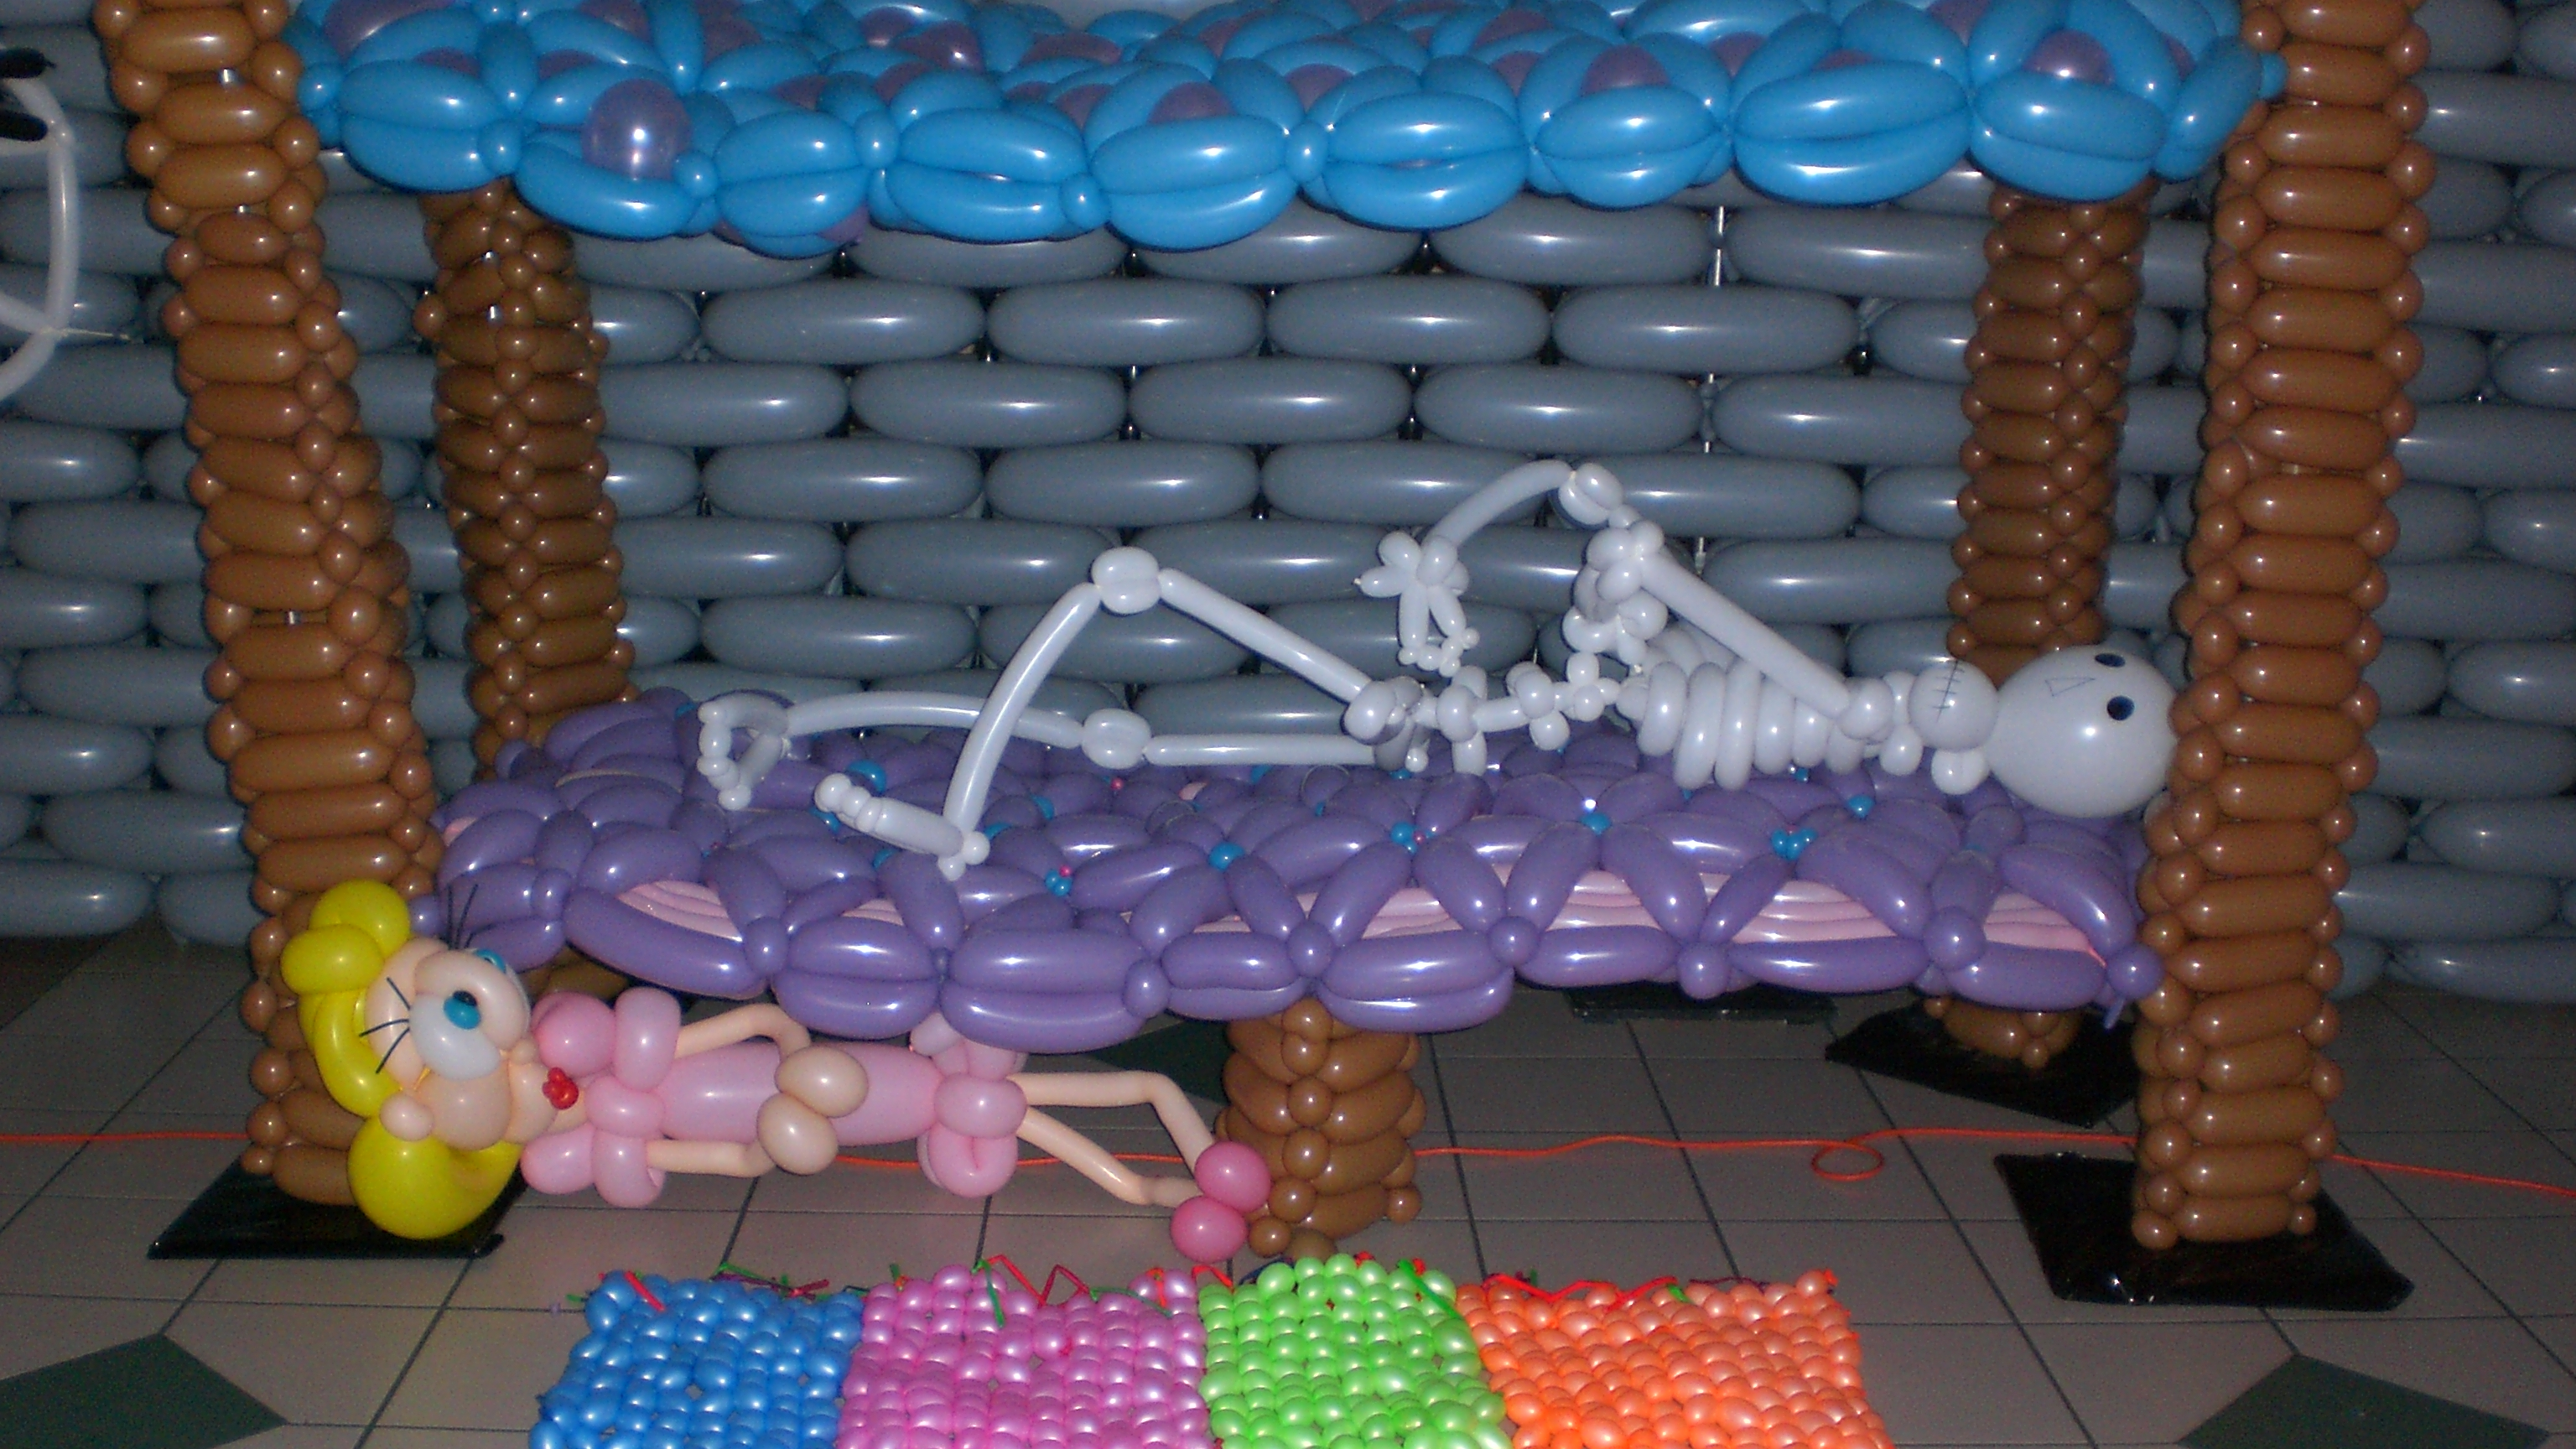 This was a group project that I was part of at Balloon Manor '08